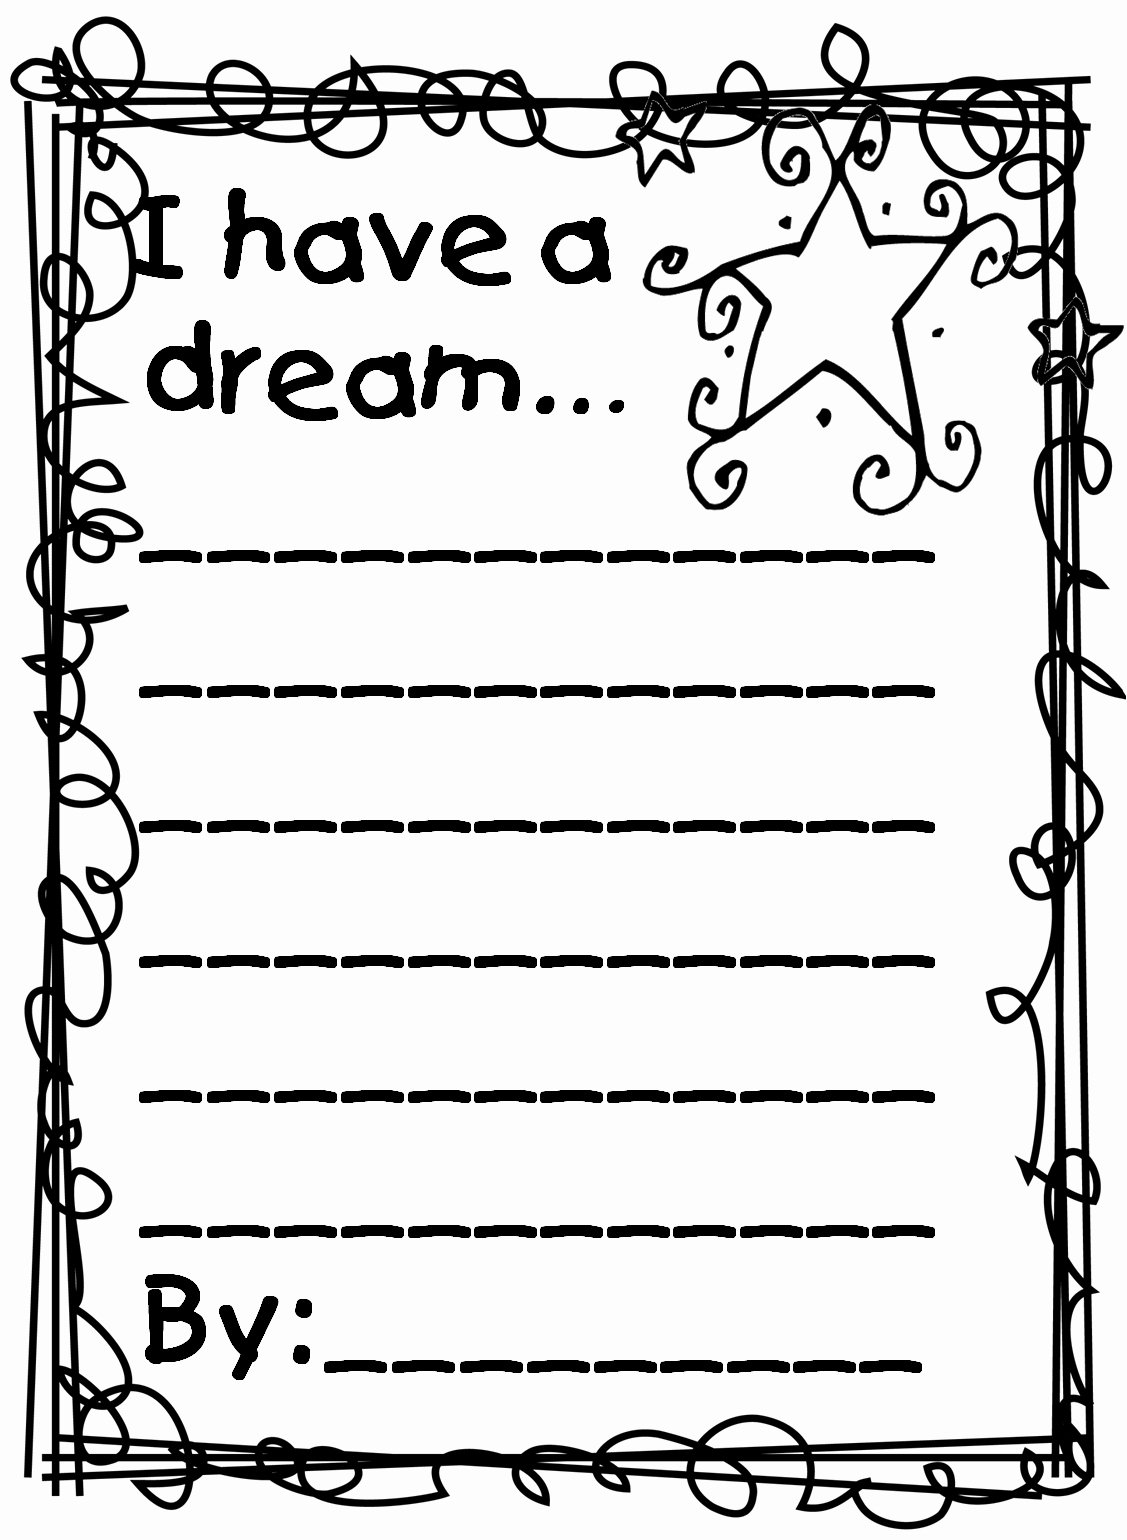 I Have A Dream Worksheet Luxury Martin Luther King Jr Coloring Pages and Worksheets Best